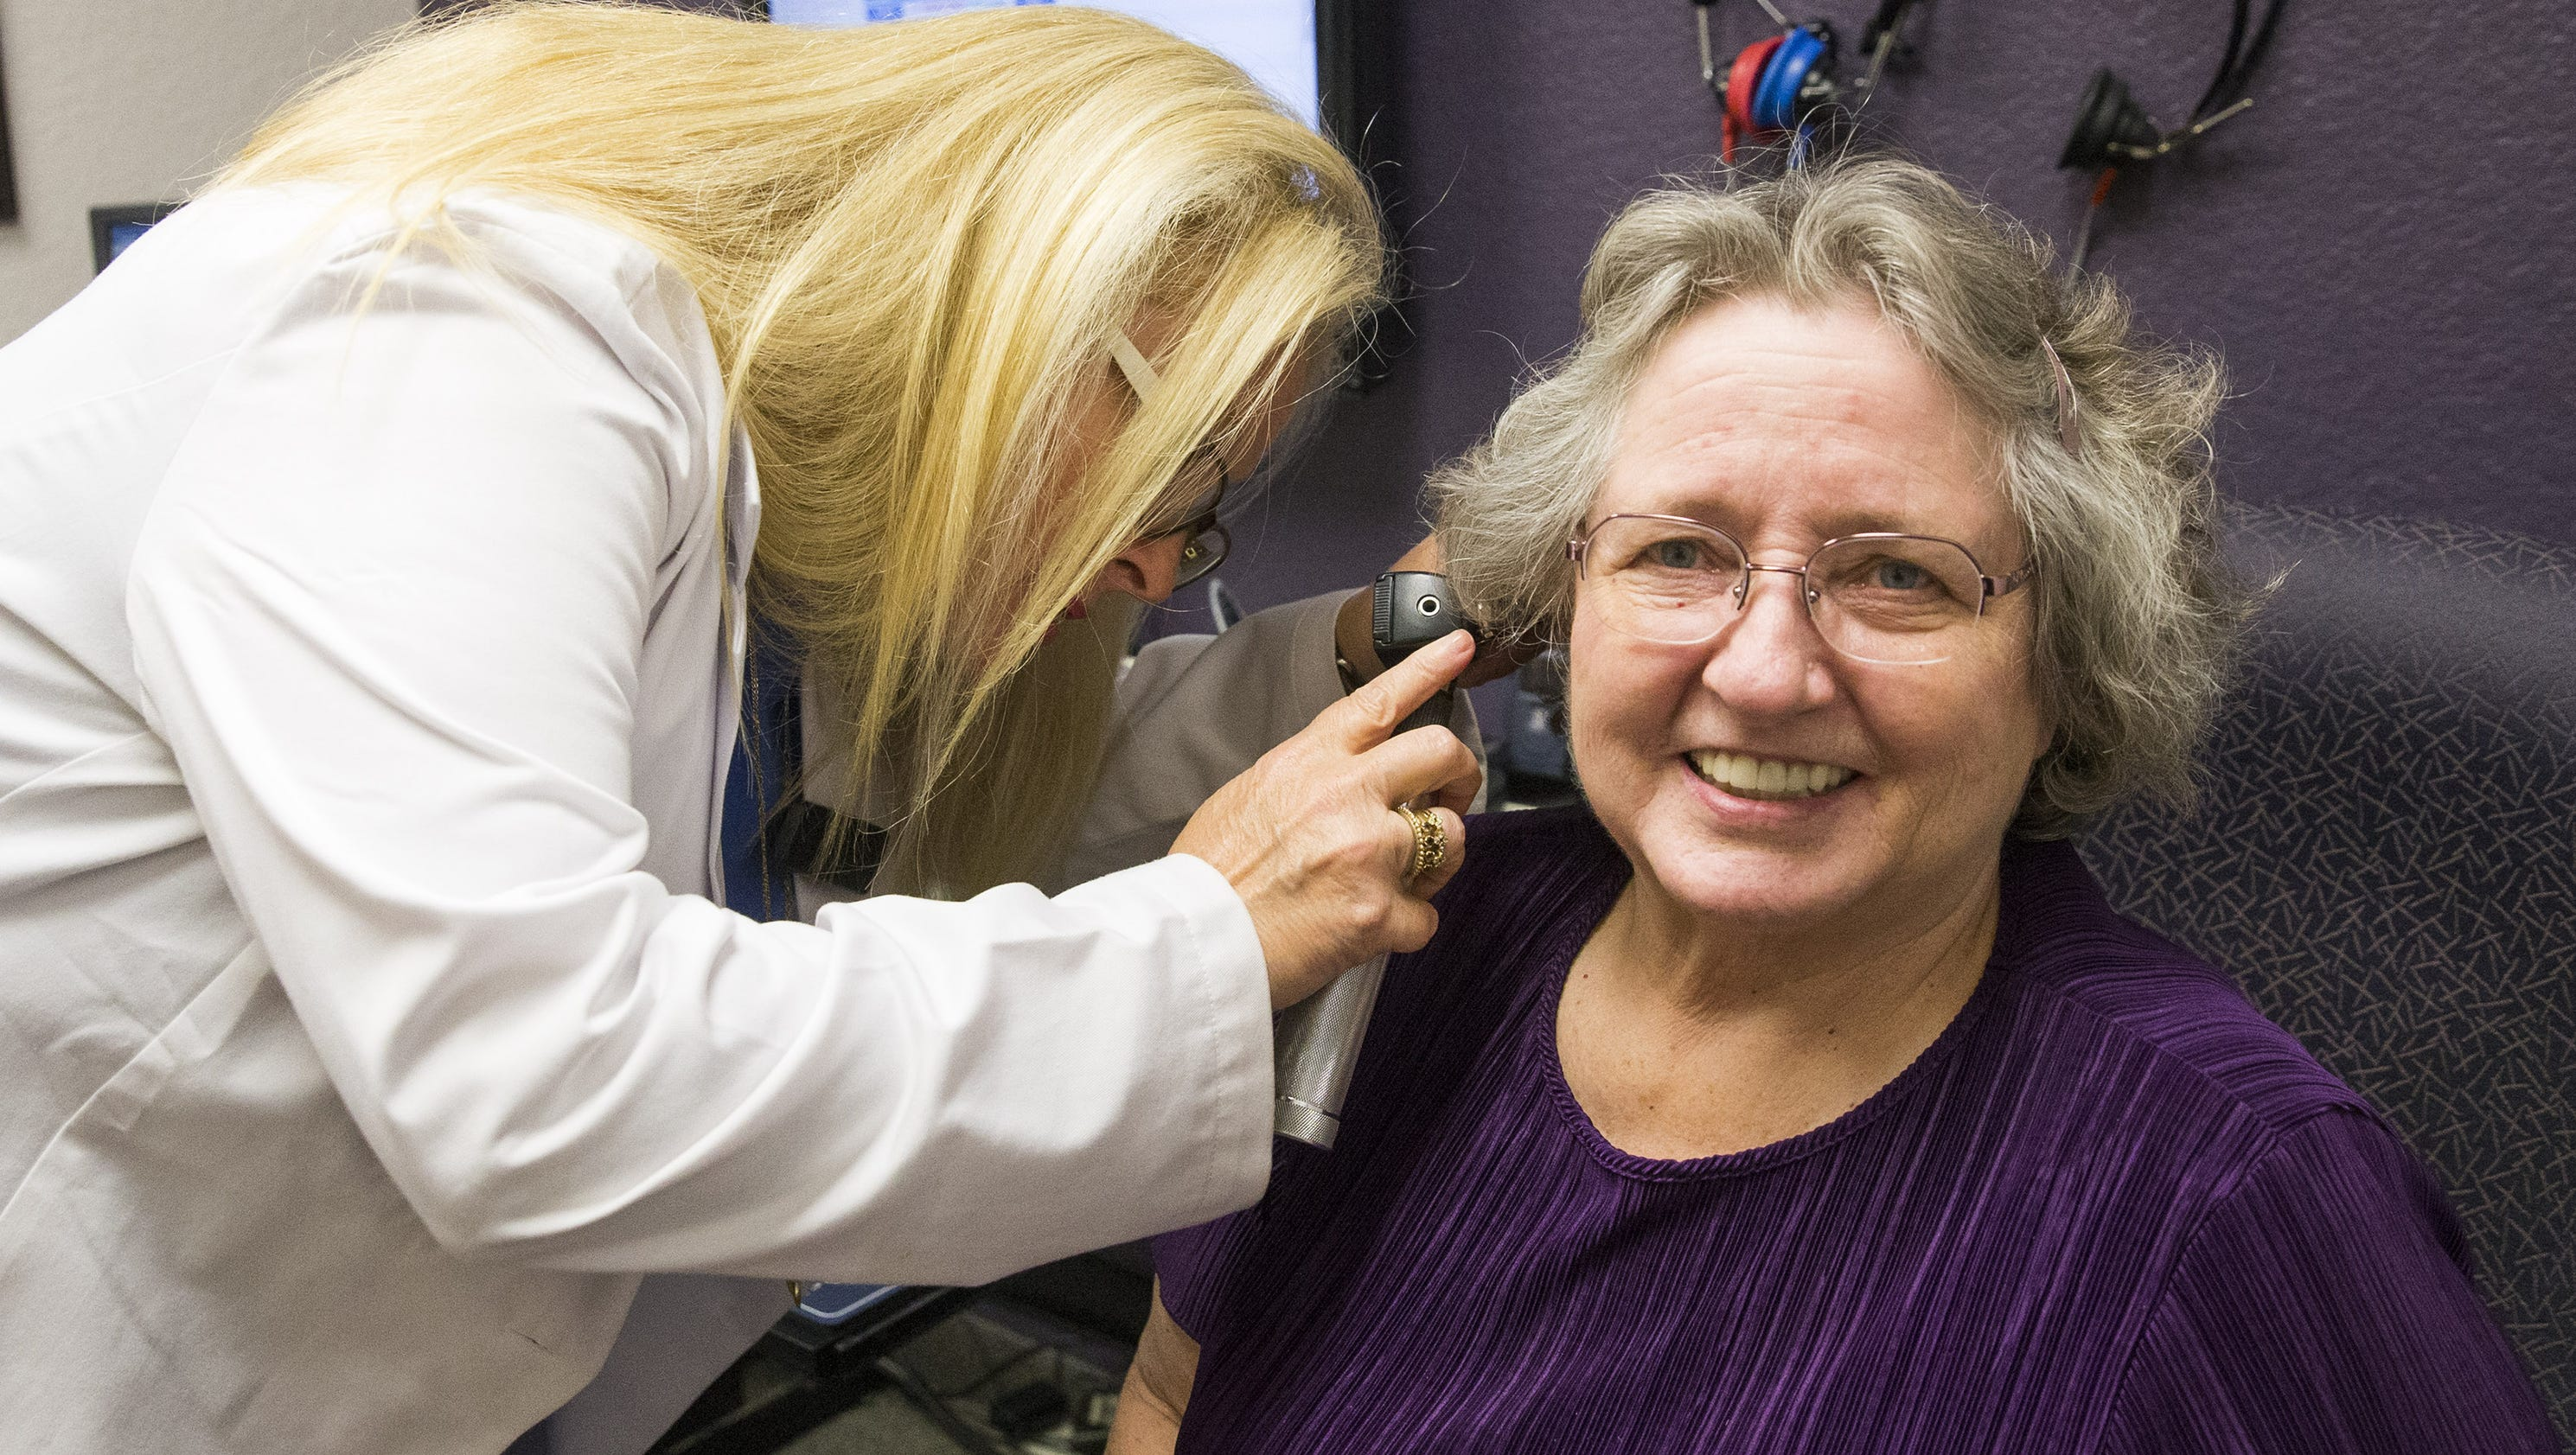 Controversial over the counter hearing aids could be ing soon